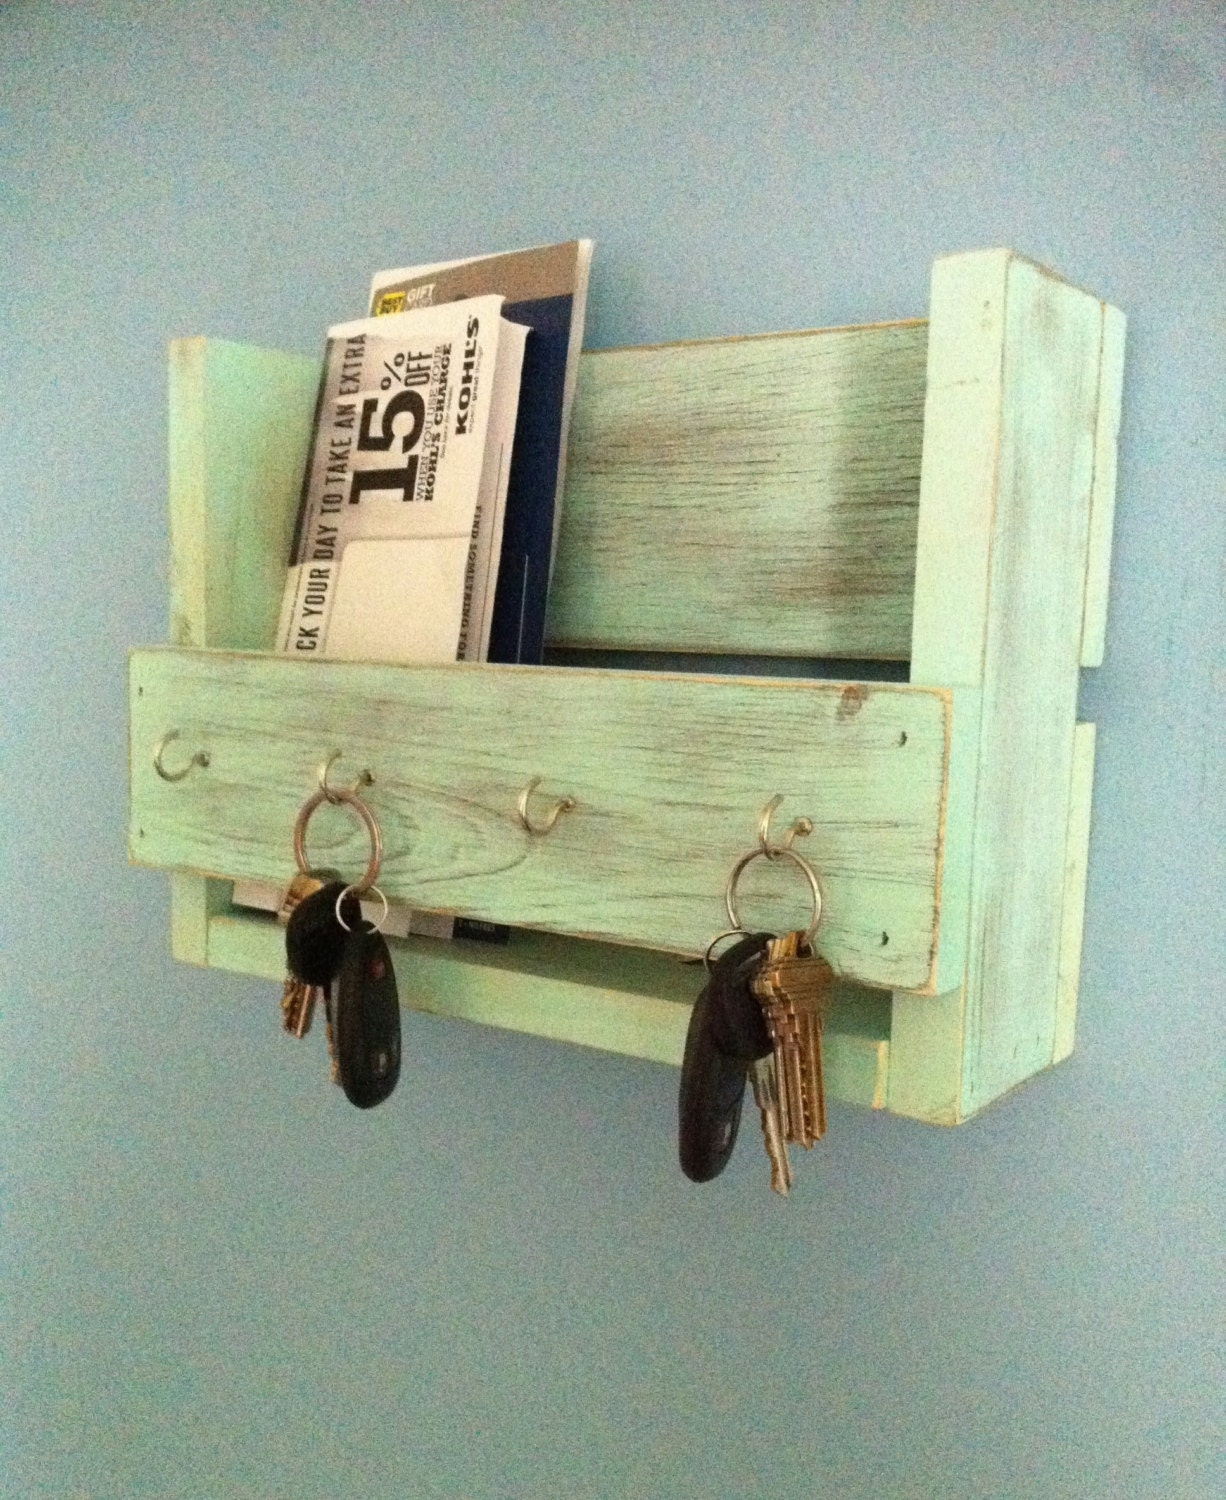 zoom Rustic key holder mail organizer aqua